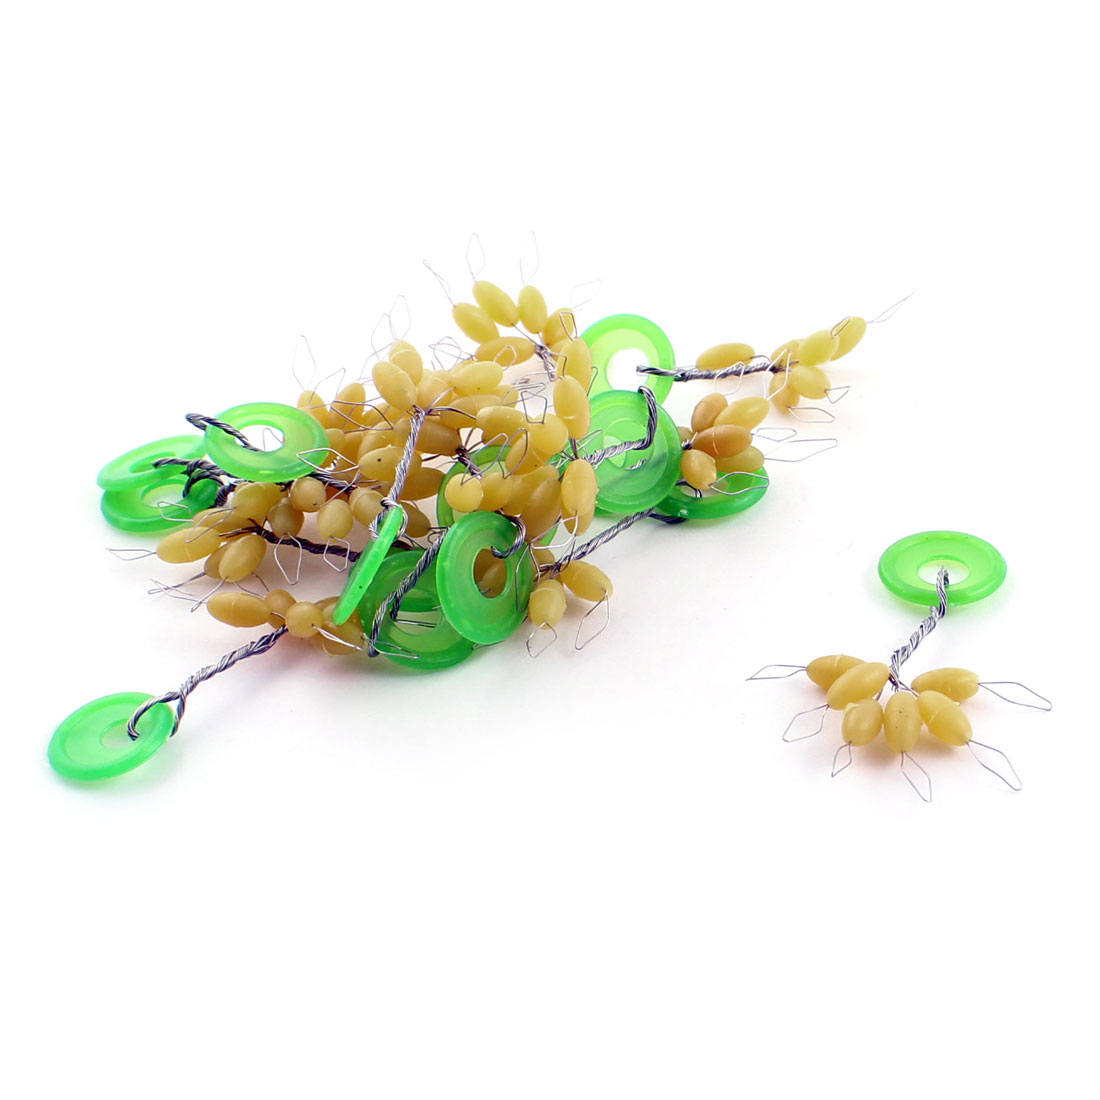 15 Pcs Oval Shape Rubber Stopper 6 in 1 Fishing Floater Bobber Sinker